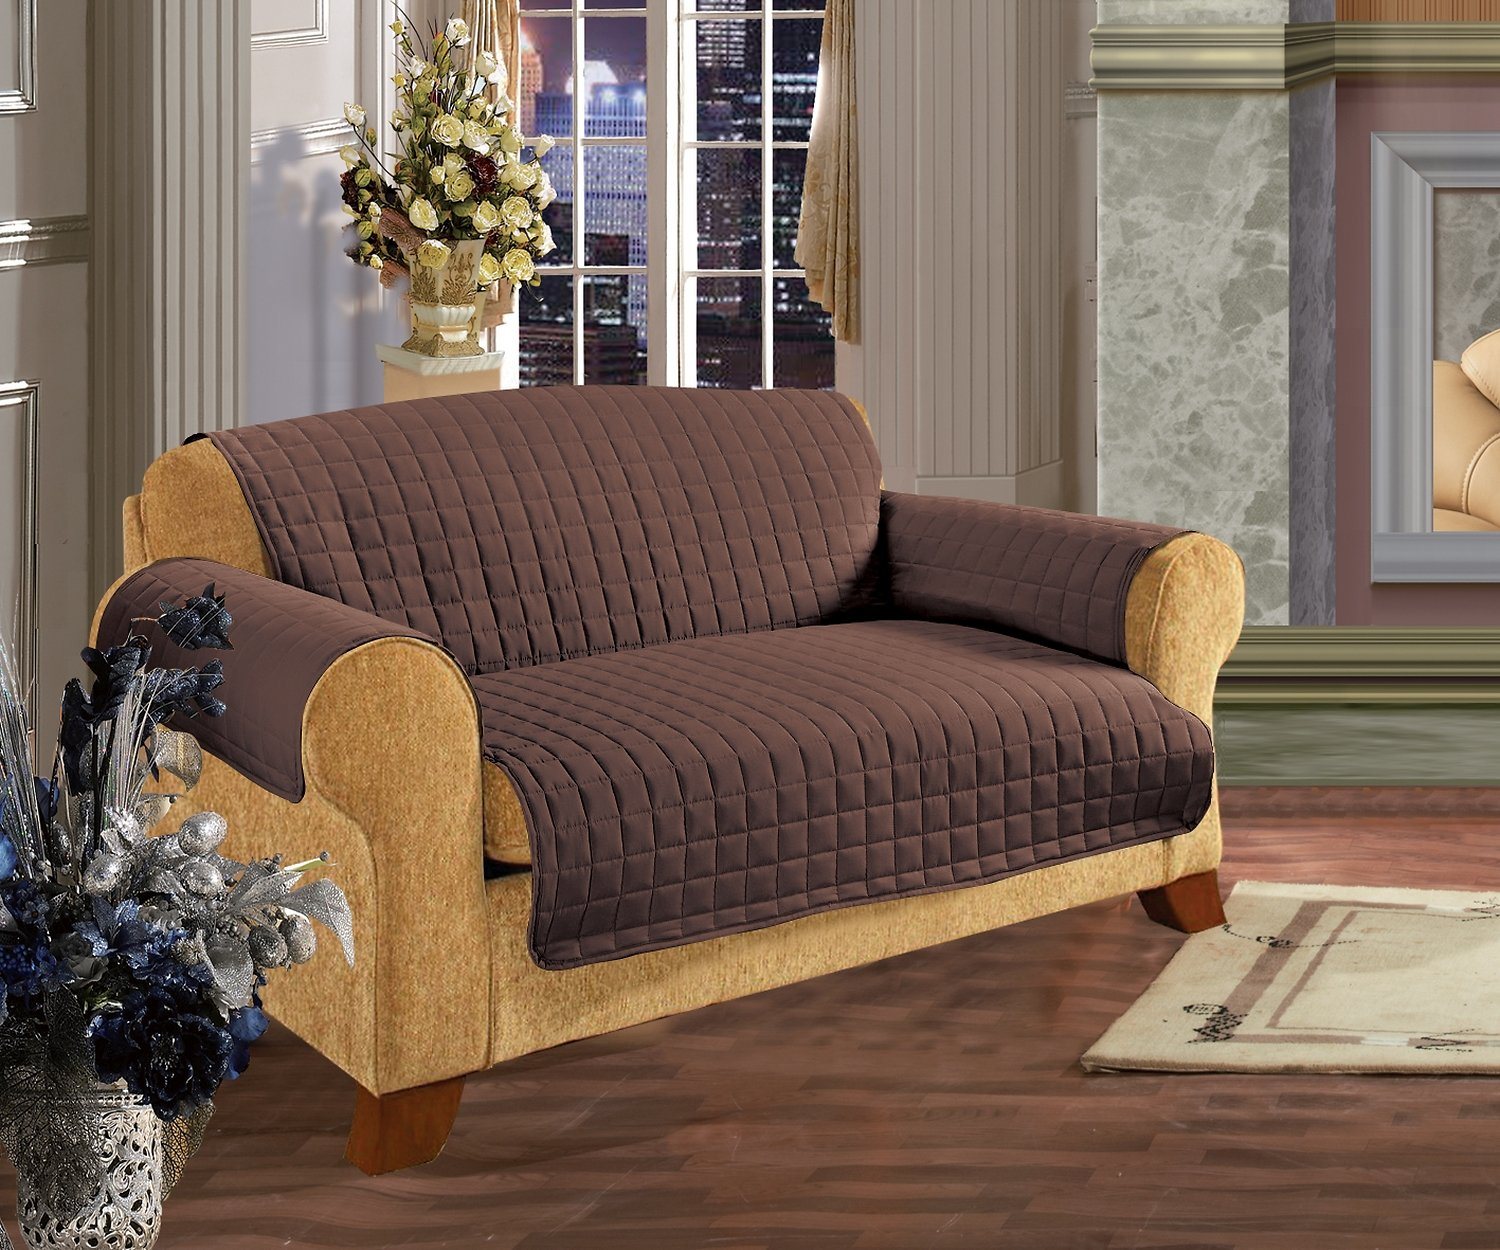 Elegant Comfort Reversible Quilted Sofa Cover, Chocolate